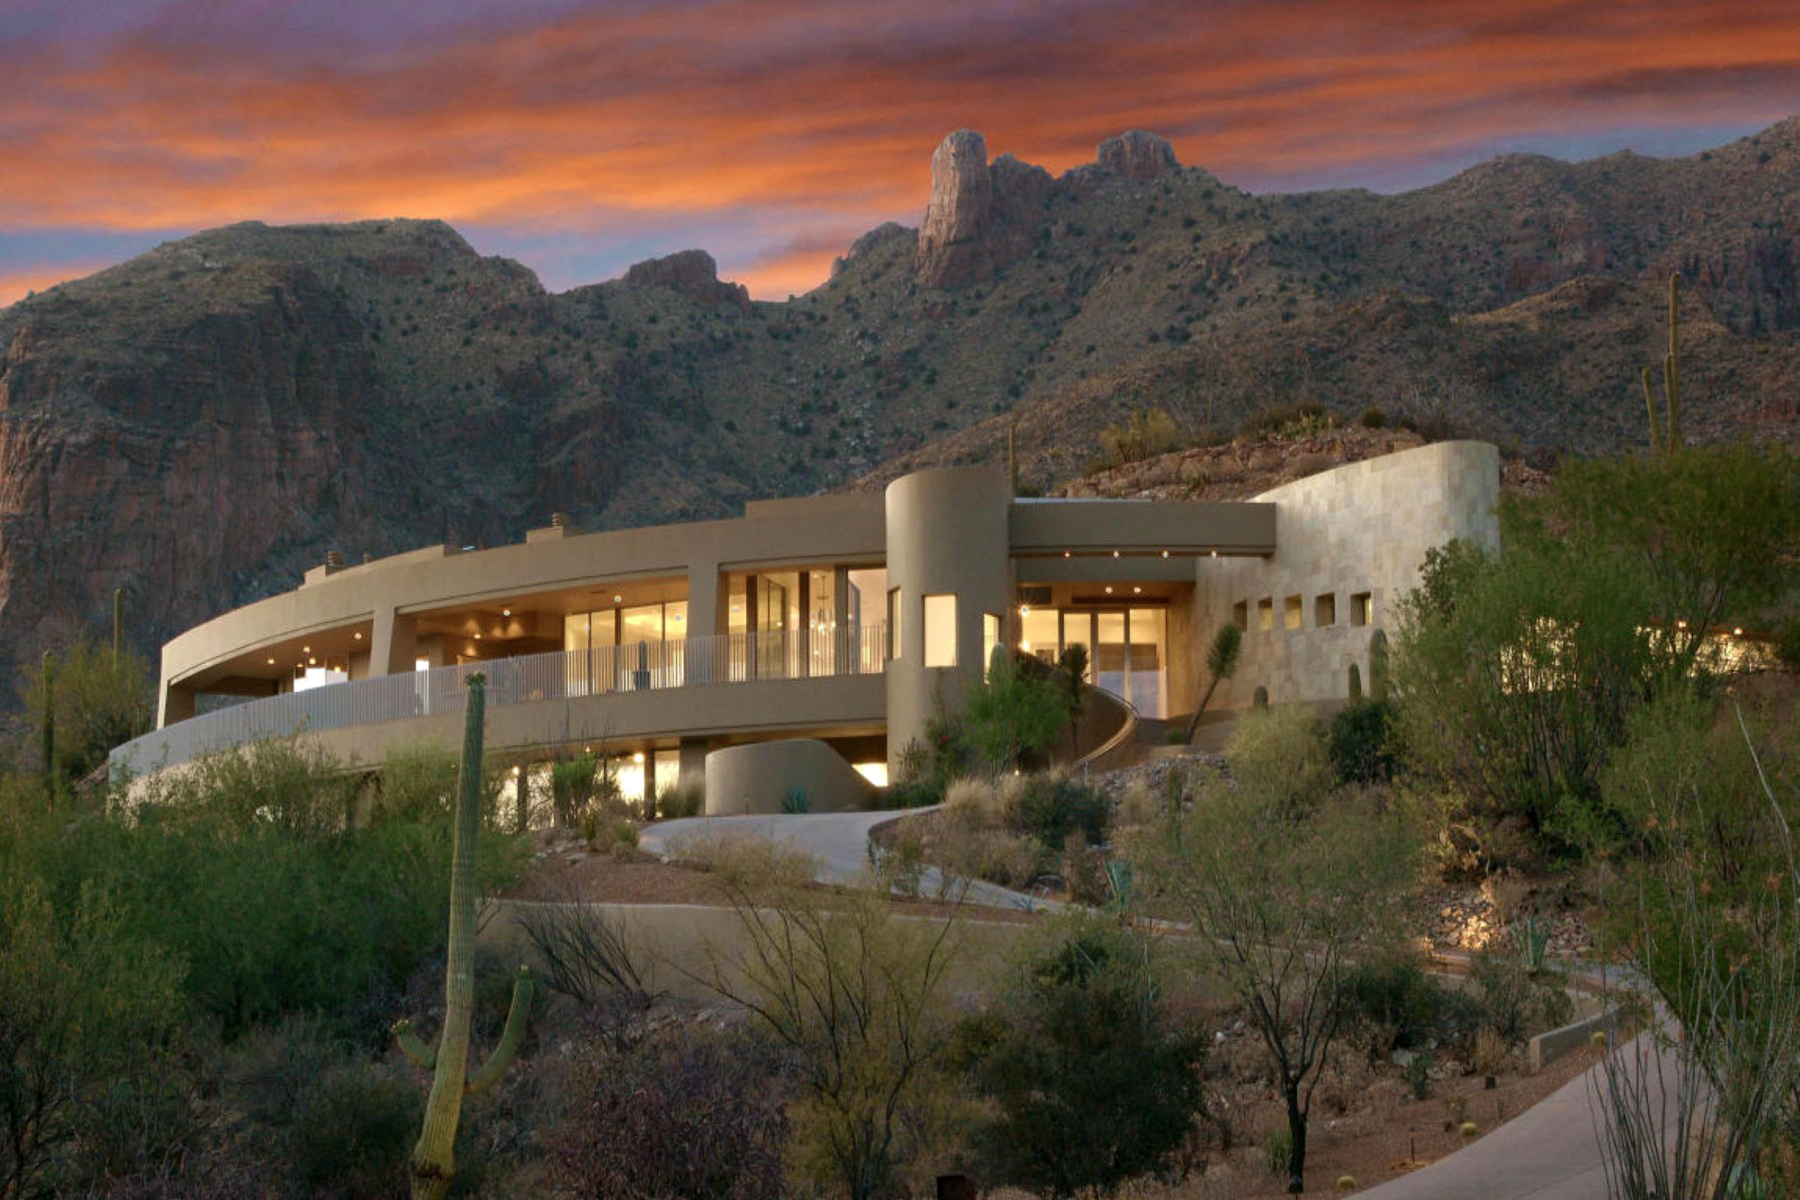 Частный односемейный дом для того Продажа на Visually Stunning Contemporary Masterpiece with Spectacular Views 7164 N Mercer Spring Tucson, Аризона 85718 Соединенные Штаты